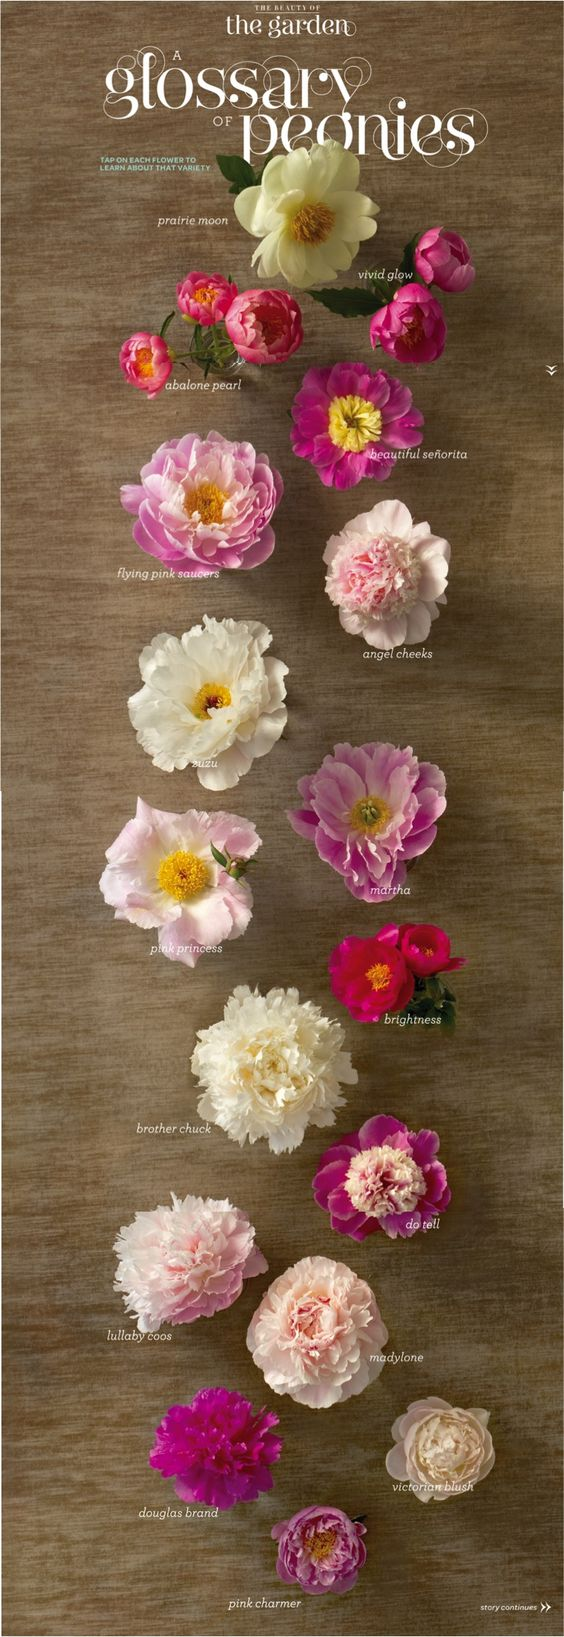 want Peonies in my bouquet. Didn't know there are so many different kinds!